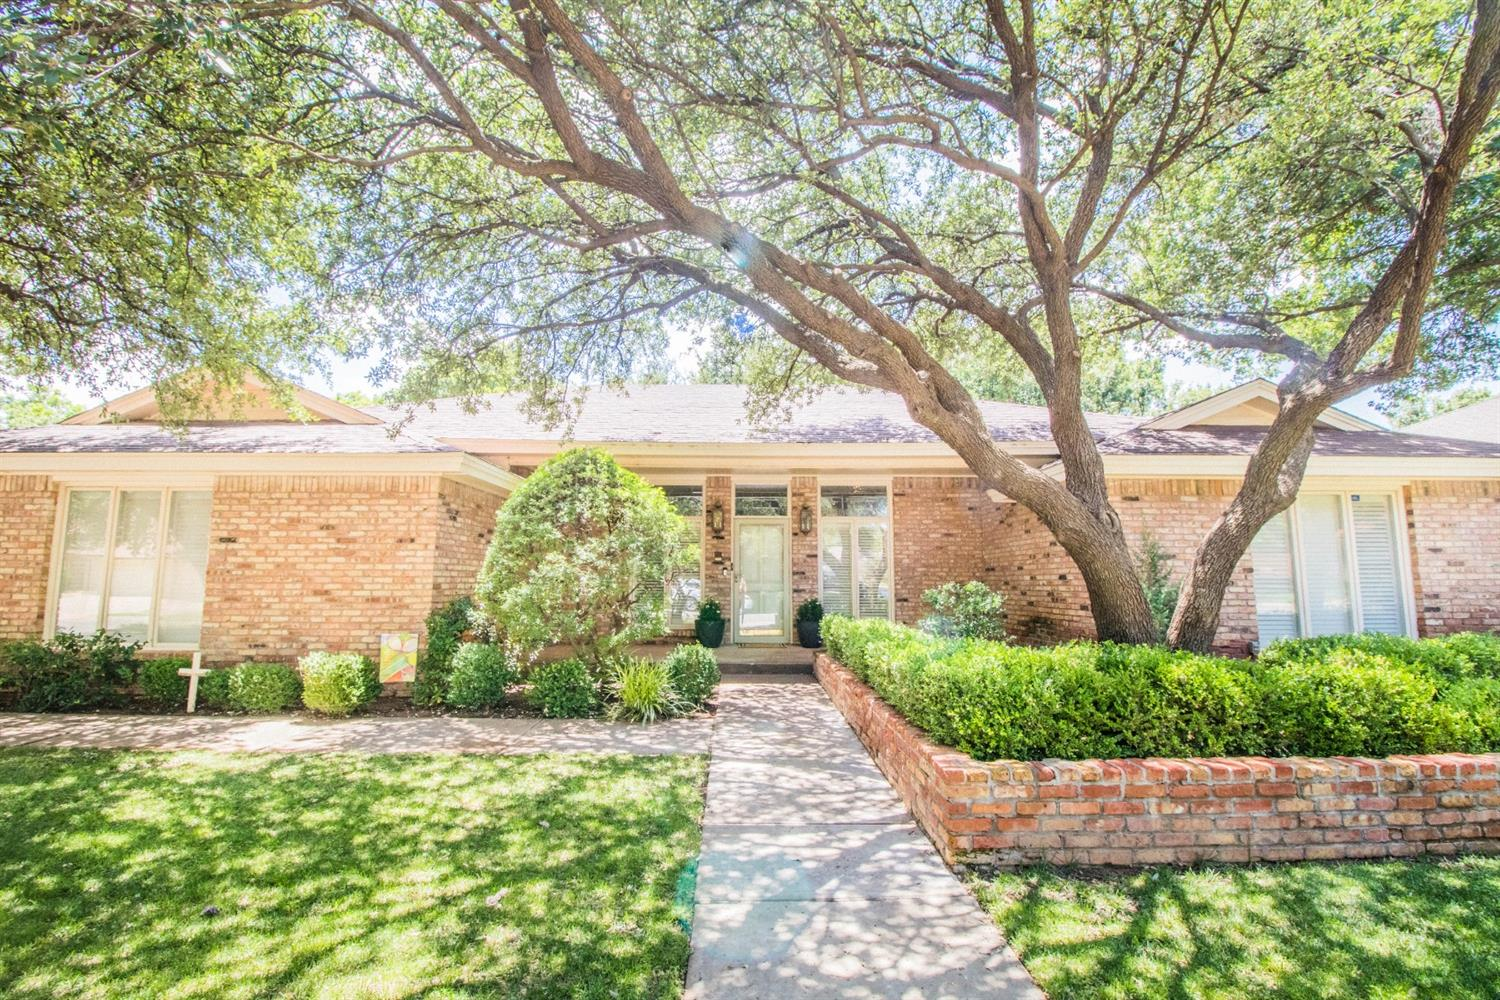 4005 88th Street, Lubbock in Lubbock County, TX 79423 Home for Sale